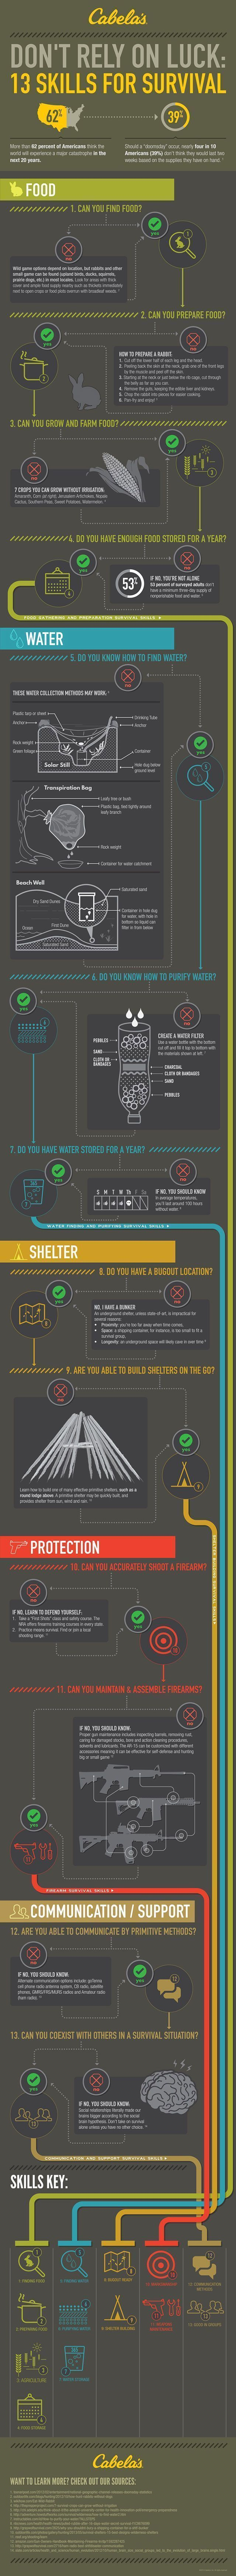 13 Top Survival Skills | Learn Now, Survive Later | Doomsday Prepping For Beginners Or Seasoned Prepper by Survival Life at http://survivallife.com/2015/12/09/survival-skills-infographic/ #survivaltips